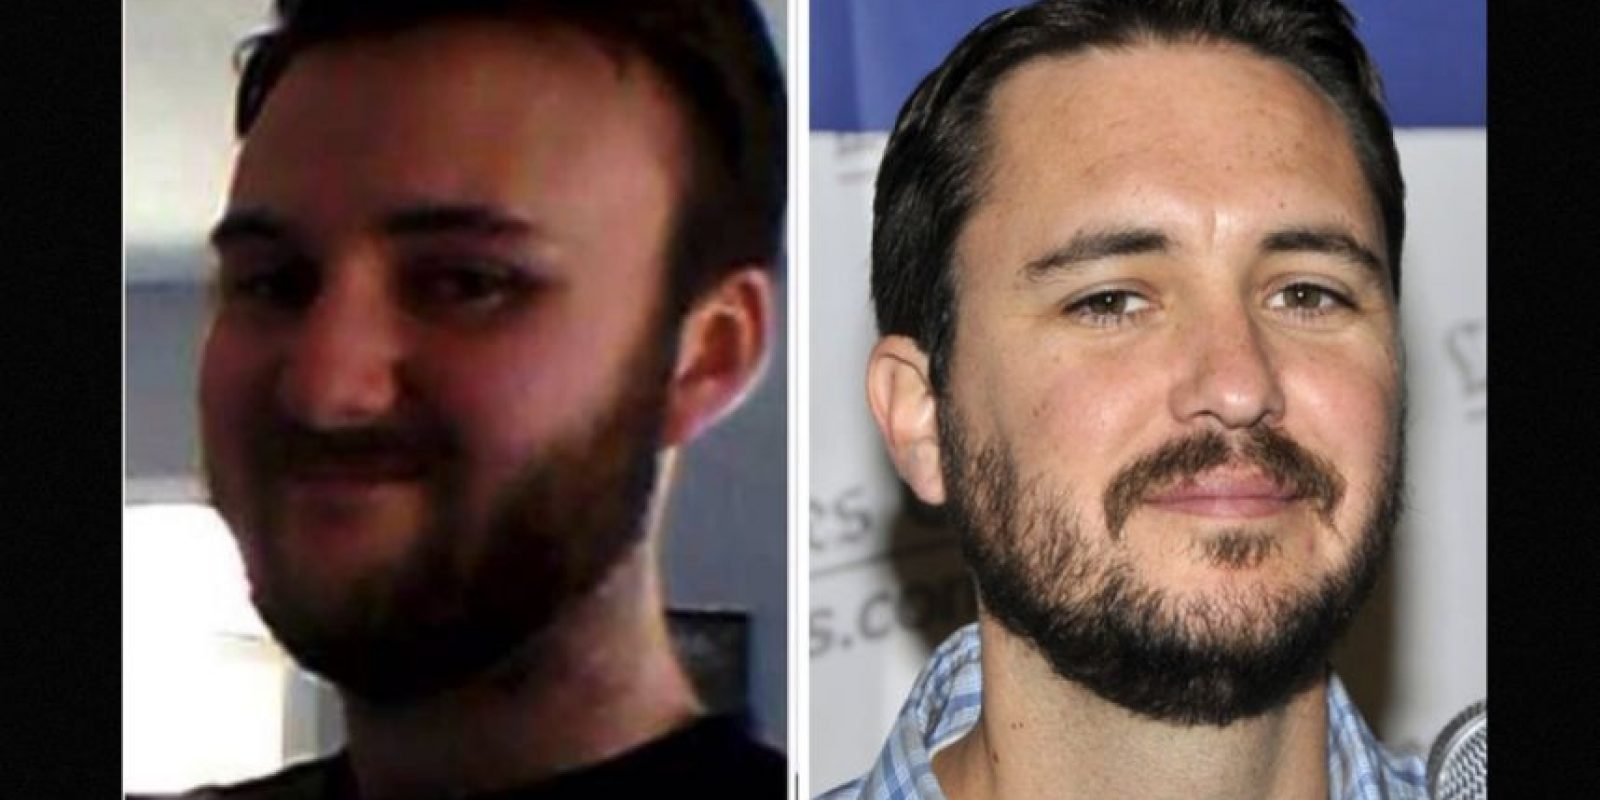 Igual a Will Wheaton Foto: Reddit/Getty